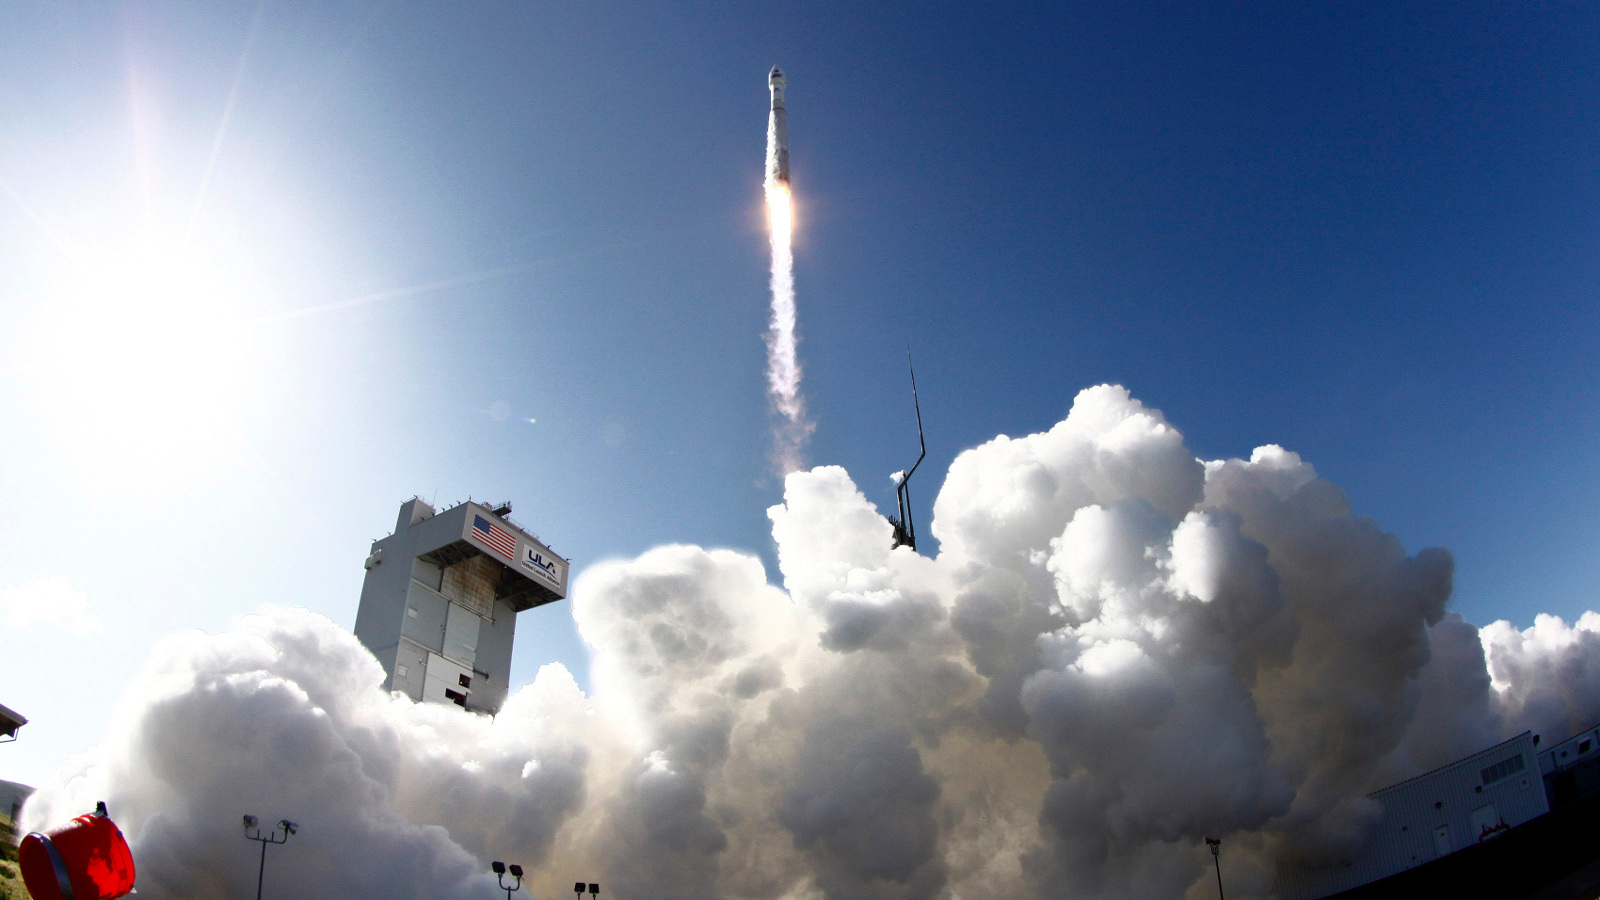 The United Launch Alliance (ULA) Atlas-V rocket with the Landsat Data Continuity Mission (LDCM) spacecraft onboard is seen as it launches at Vandenberg Air Force Base, California, February 11, 2013. The LDCM mission is a collaboration between NASA and the U.S. Geological Survey that will continue the Landsat Program's 40-year data record of monitoring the Earth's landscapes from space.